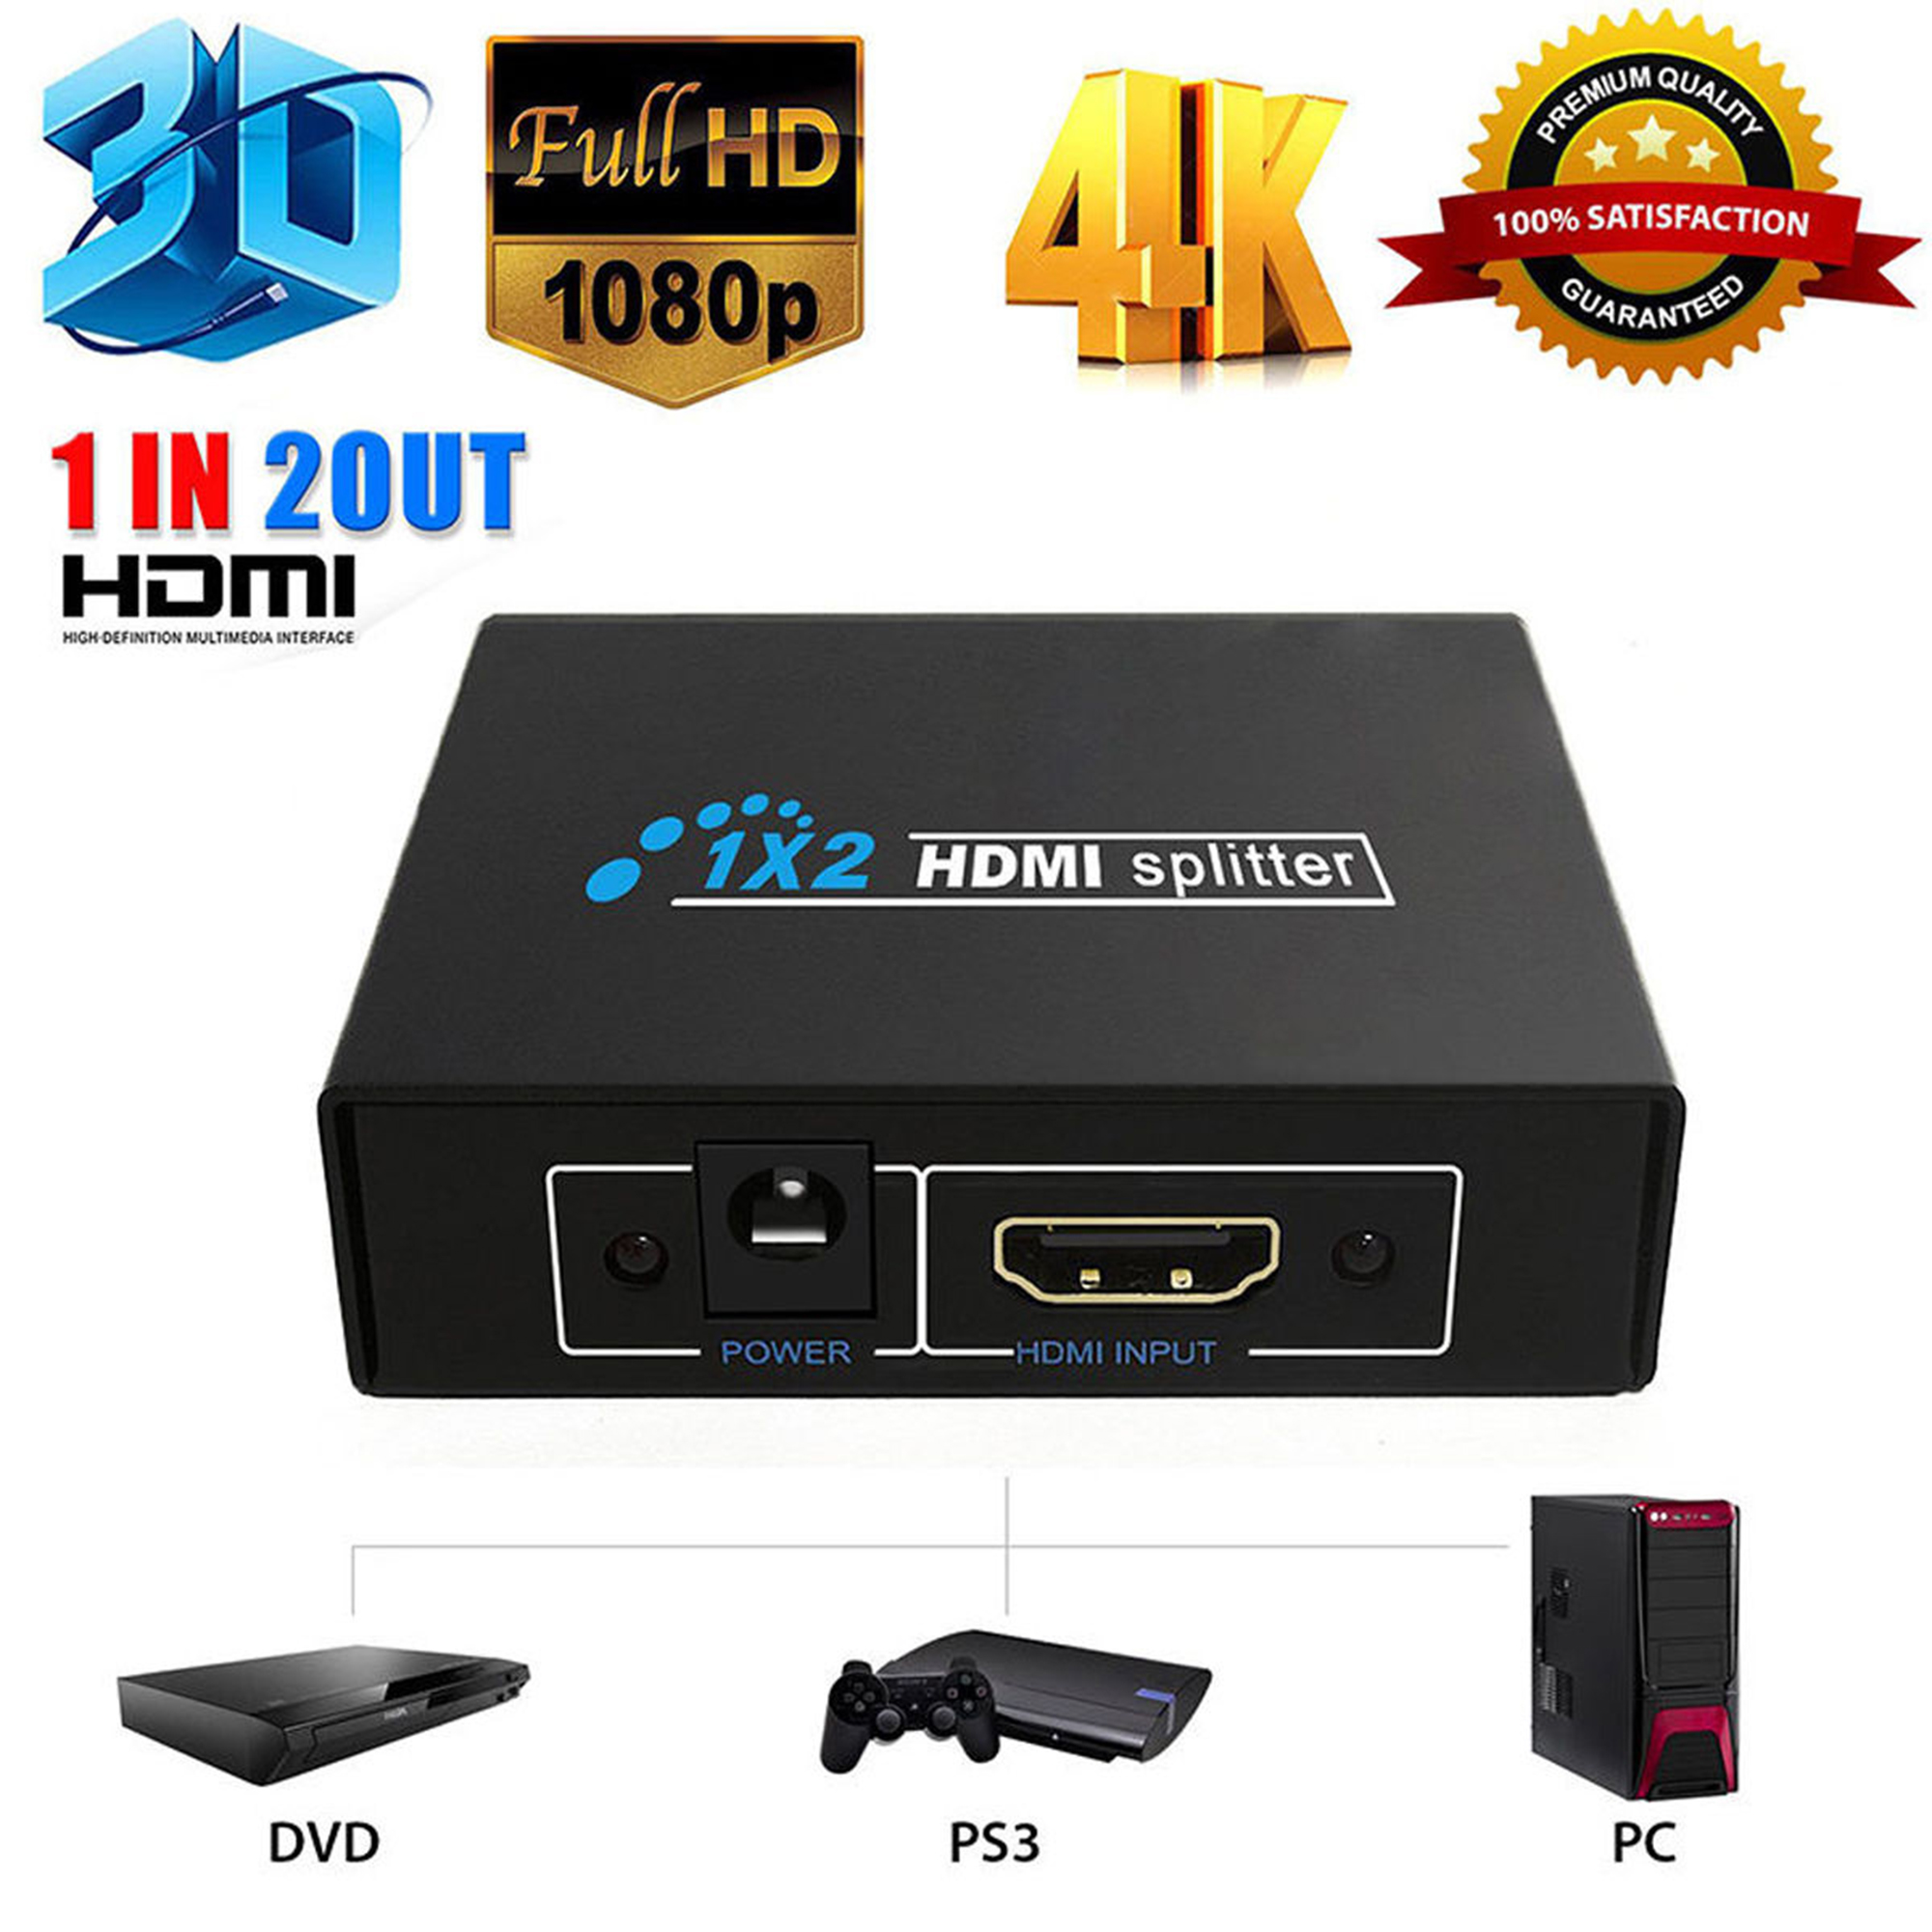 Ultra HD 4K 2 Port HDMI Splitter 1x2 Repeater Amplifier HUB 1080P 3D 1 In 2 Out Splitters